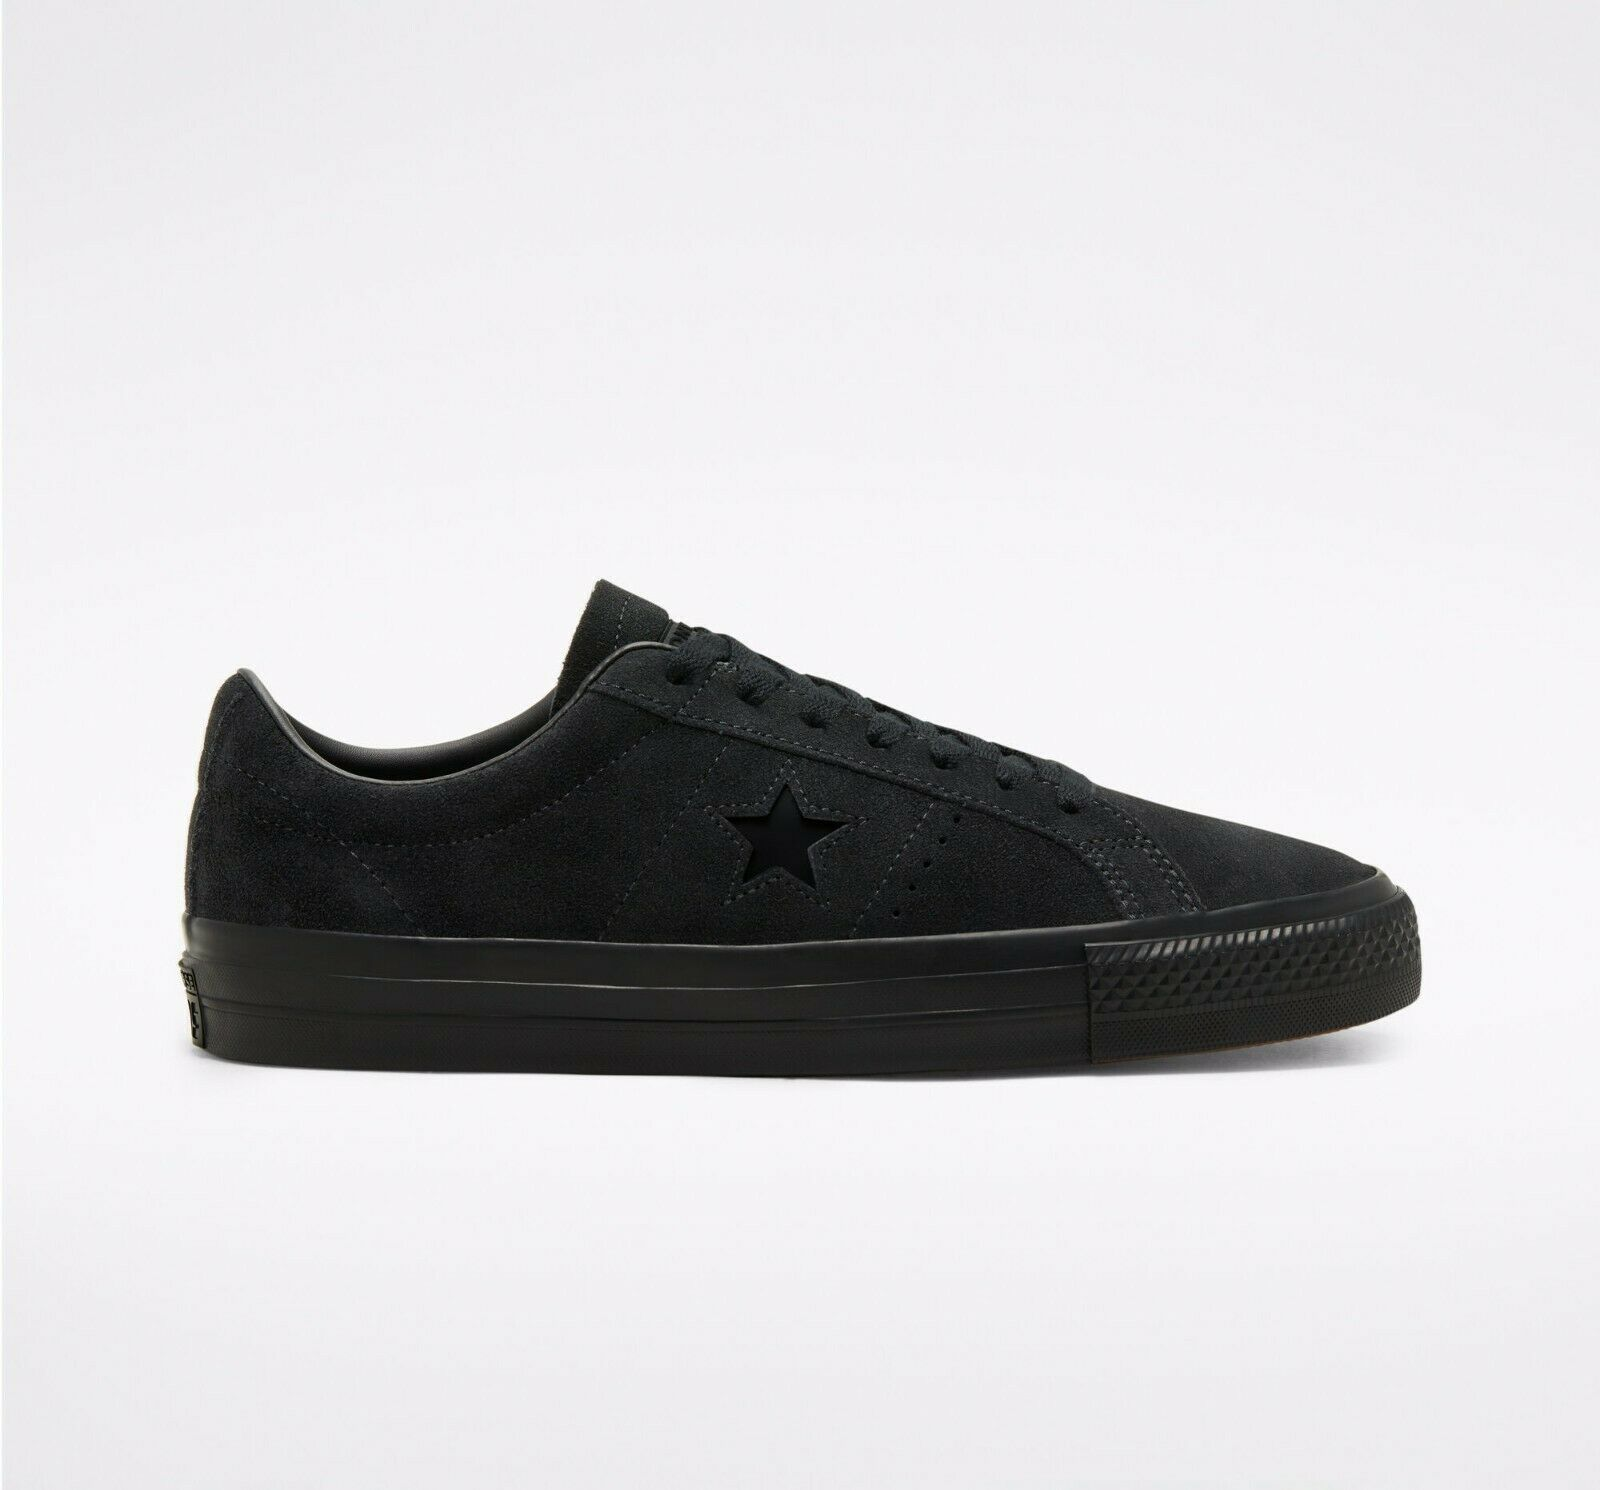 converse one star ox low top shoes